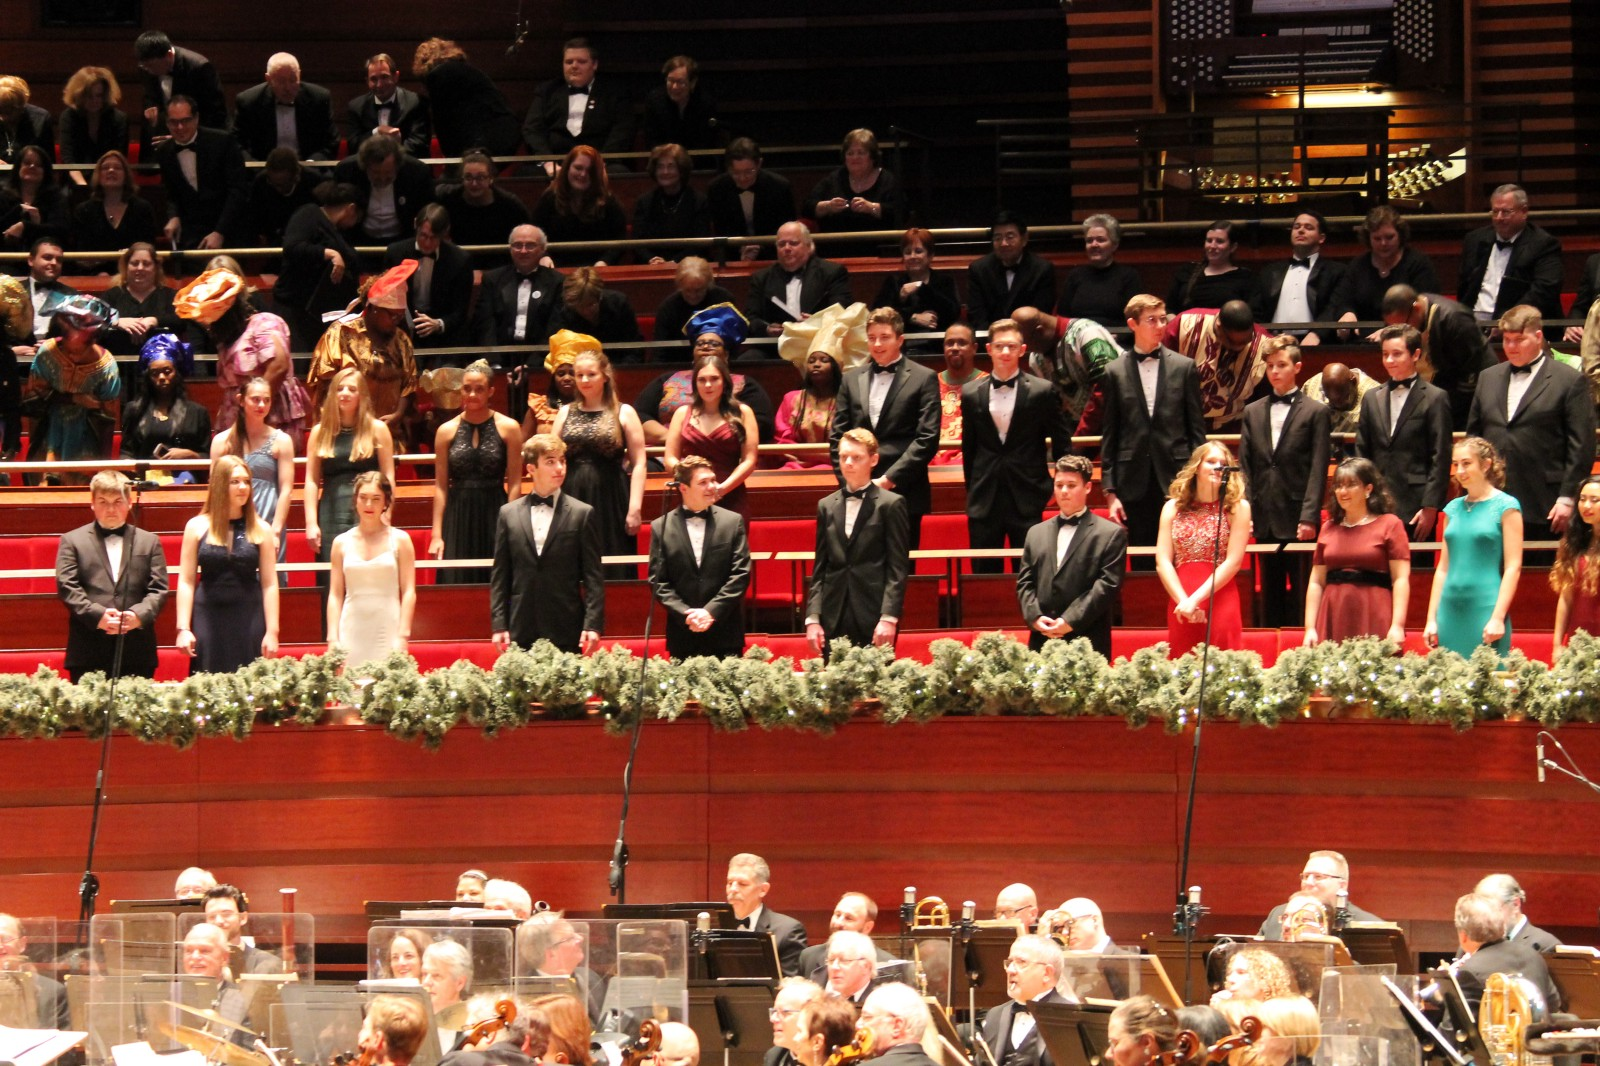 annual christmas choir competition the students of neshaminy high schools select choir performed text me merry christmas alongside the philly pops